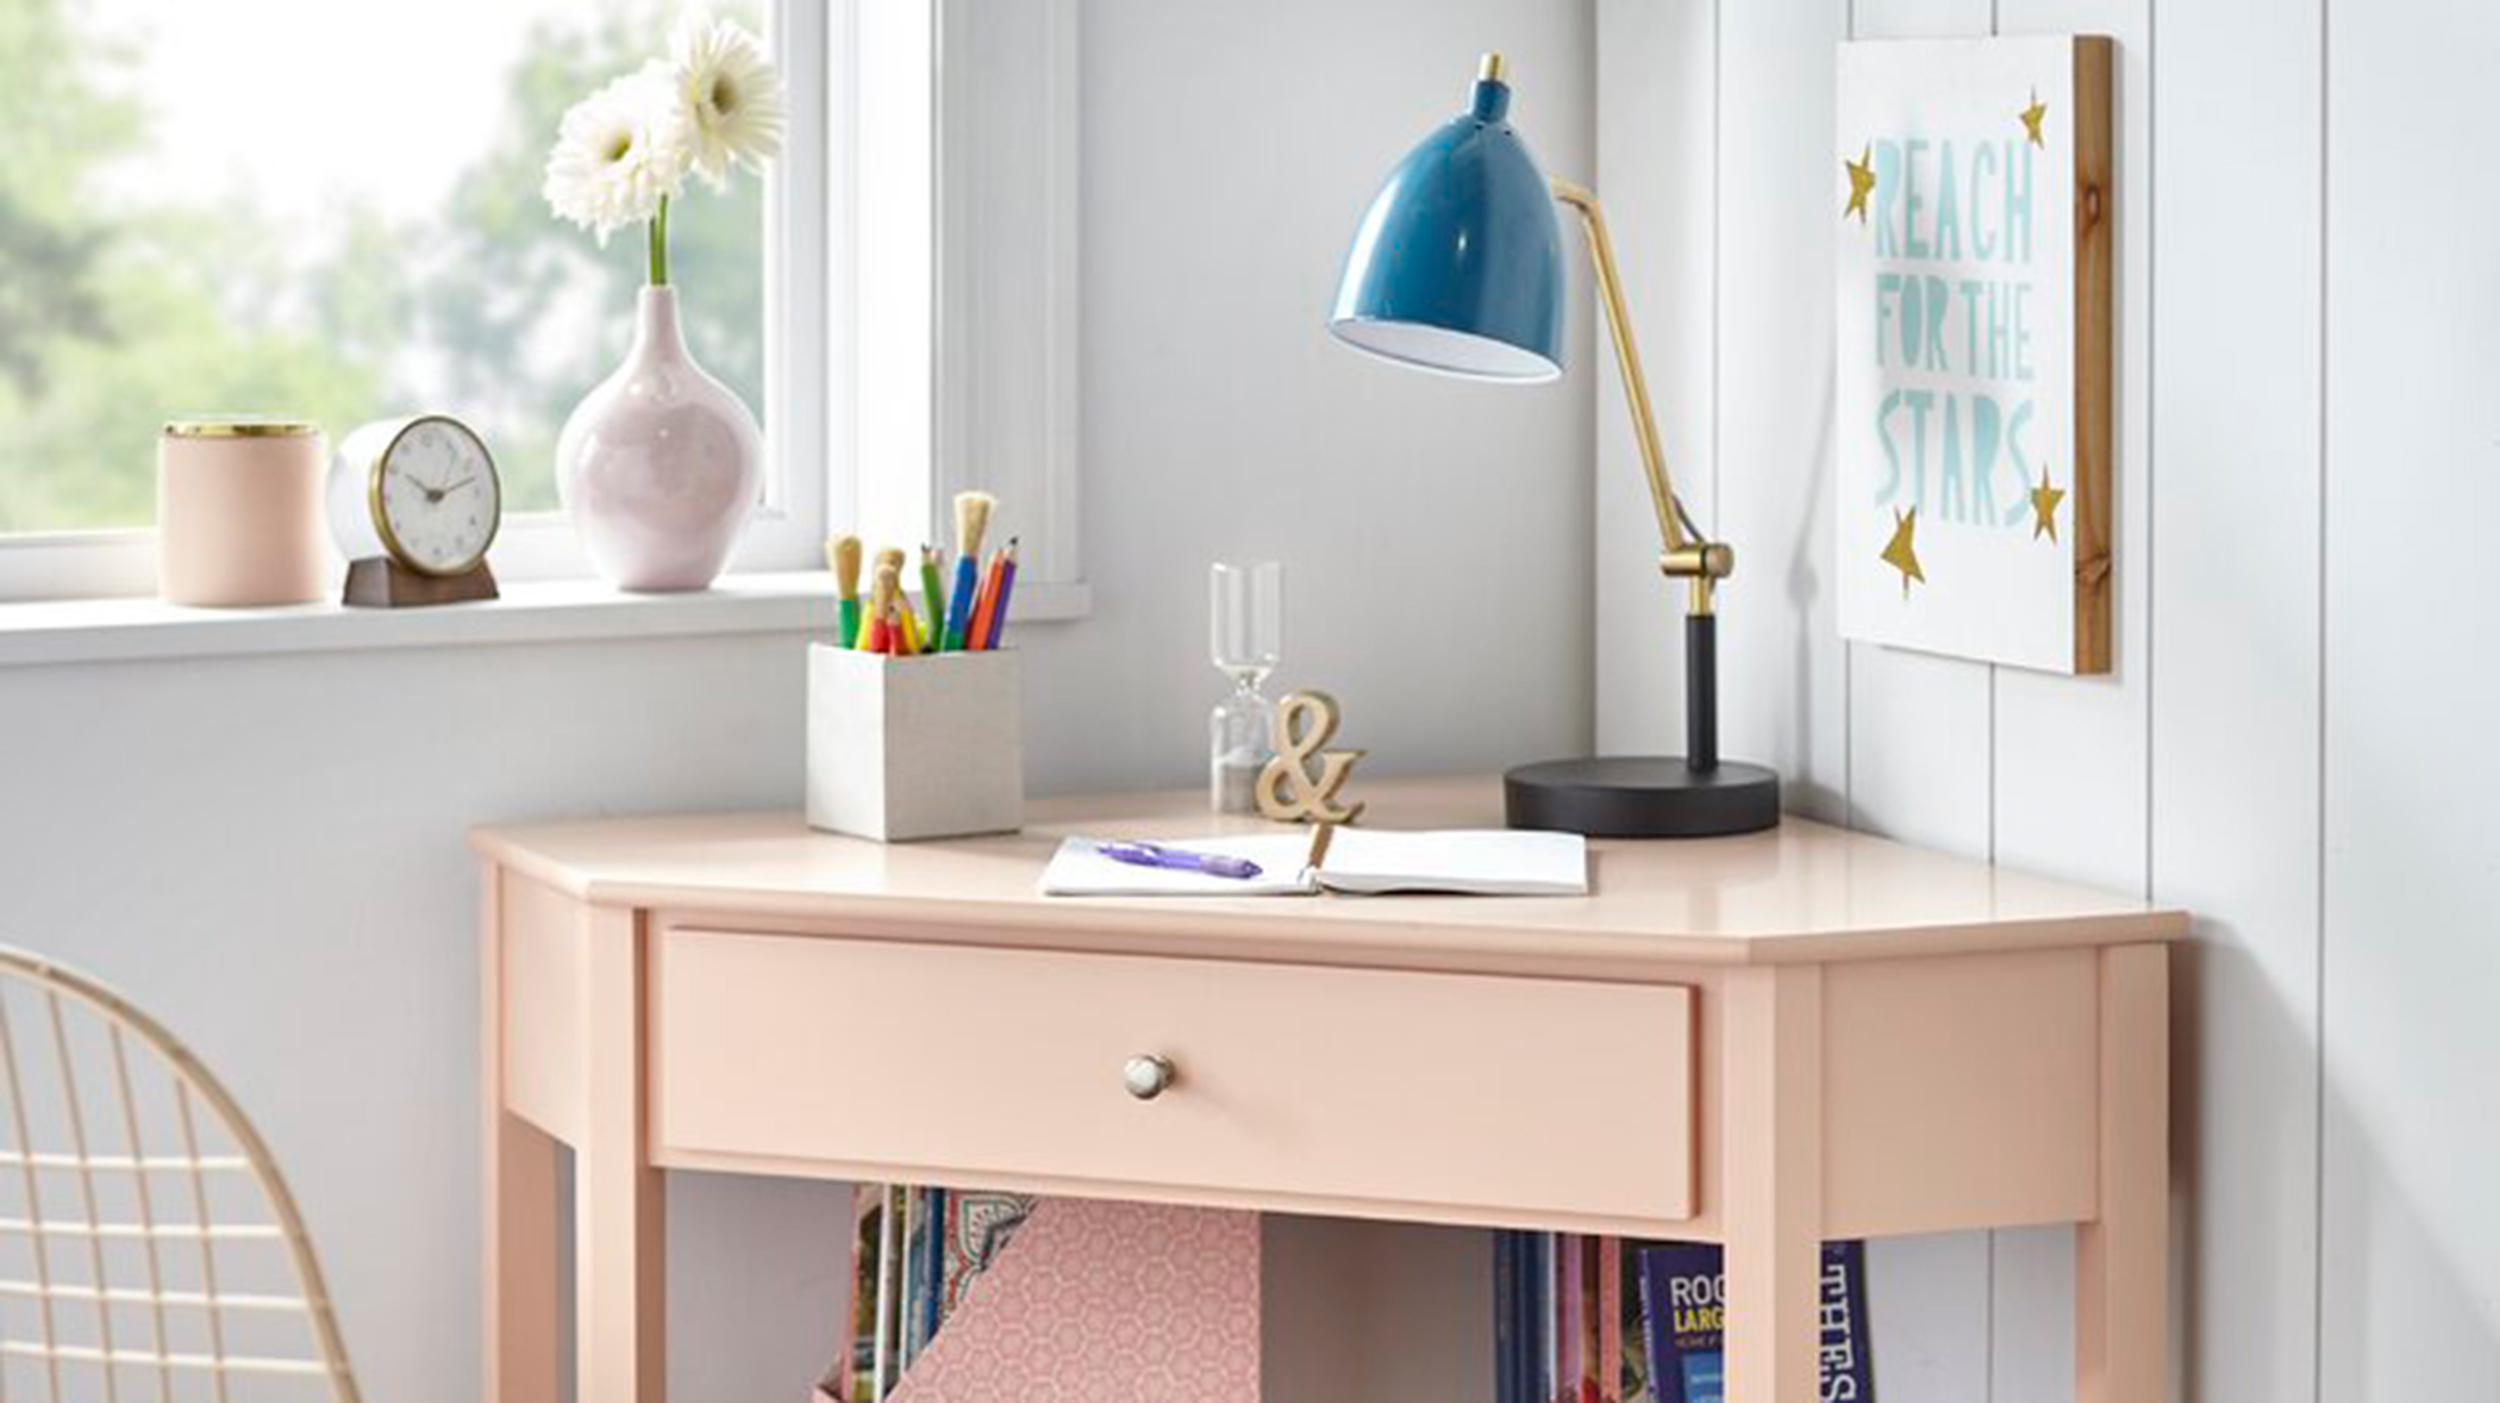 Small space furniture: 20 genius solutions for compact living